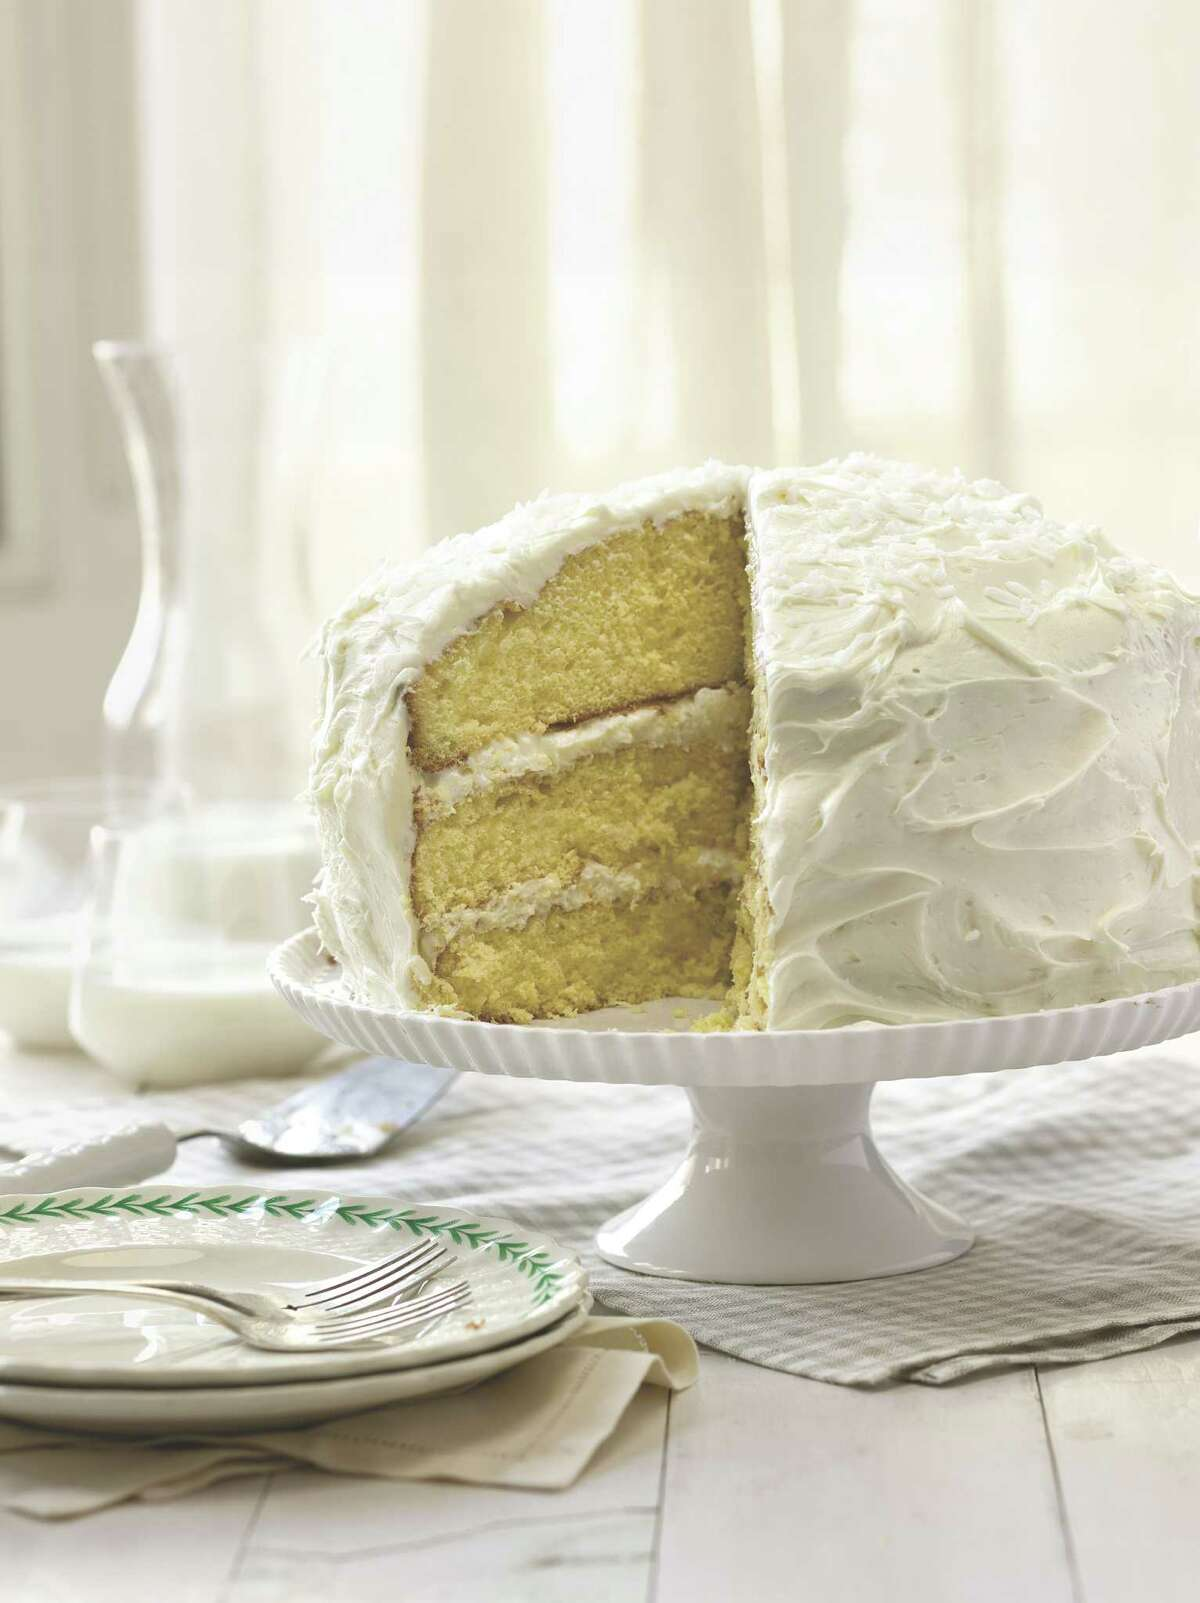 """Deen makes this three-layer Coconut Cake for her son Jamie's birthday. The recipe is included in the """"Southern Cooking Bible"""" by Paula Deen with Melissa Clark. Copyright 2011 by Paula Deen. Reprinted by permission of Simon & Schuster, Inc, NY."""